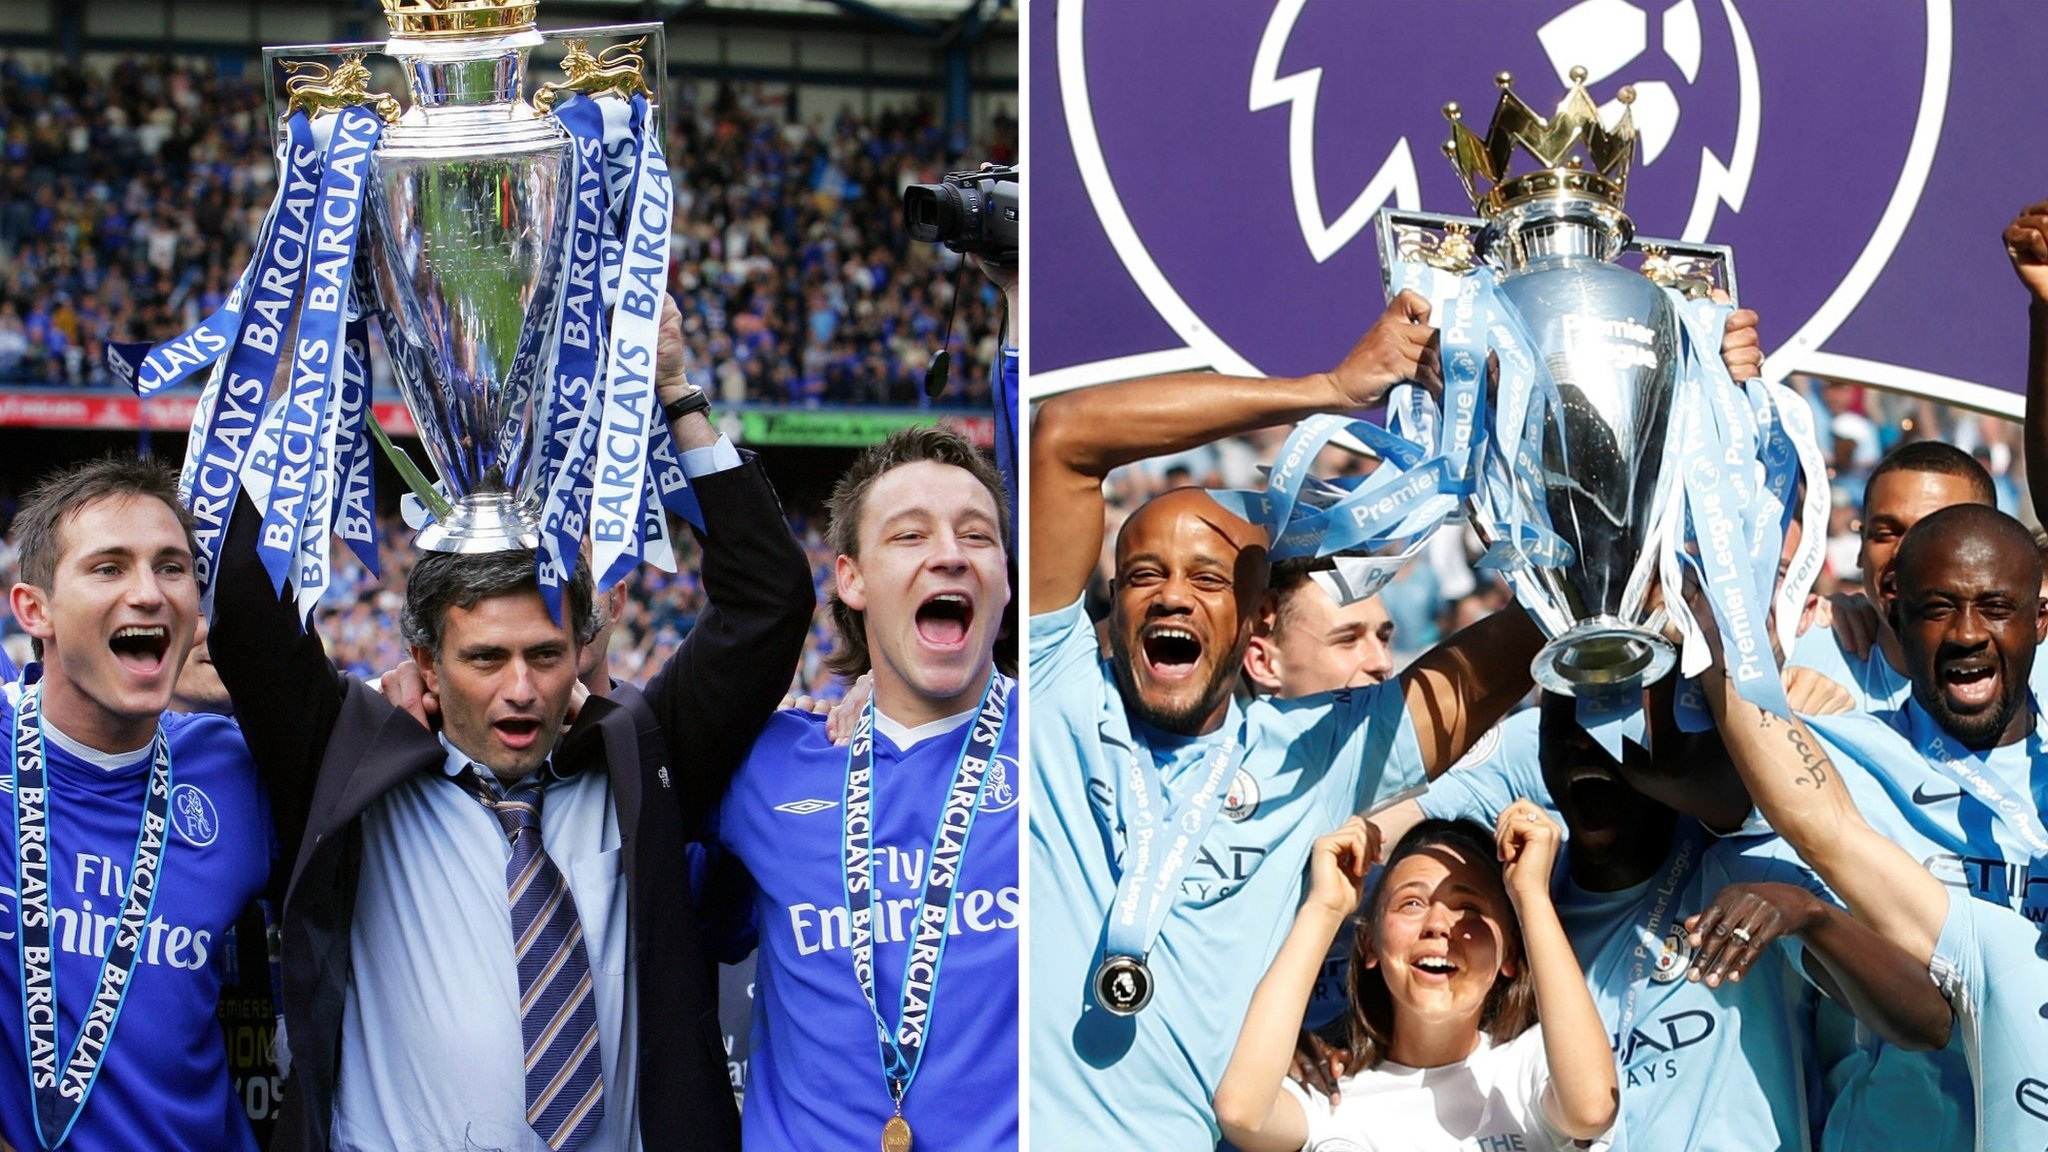 Chelsea 2005 or Man City 2018? Lampard picks his combined XI